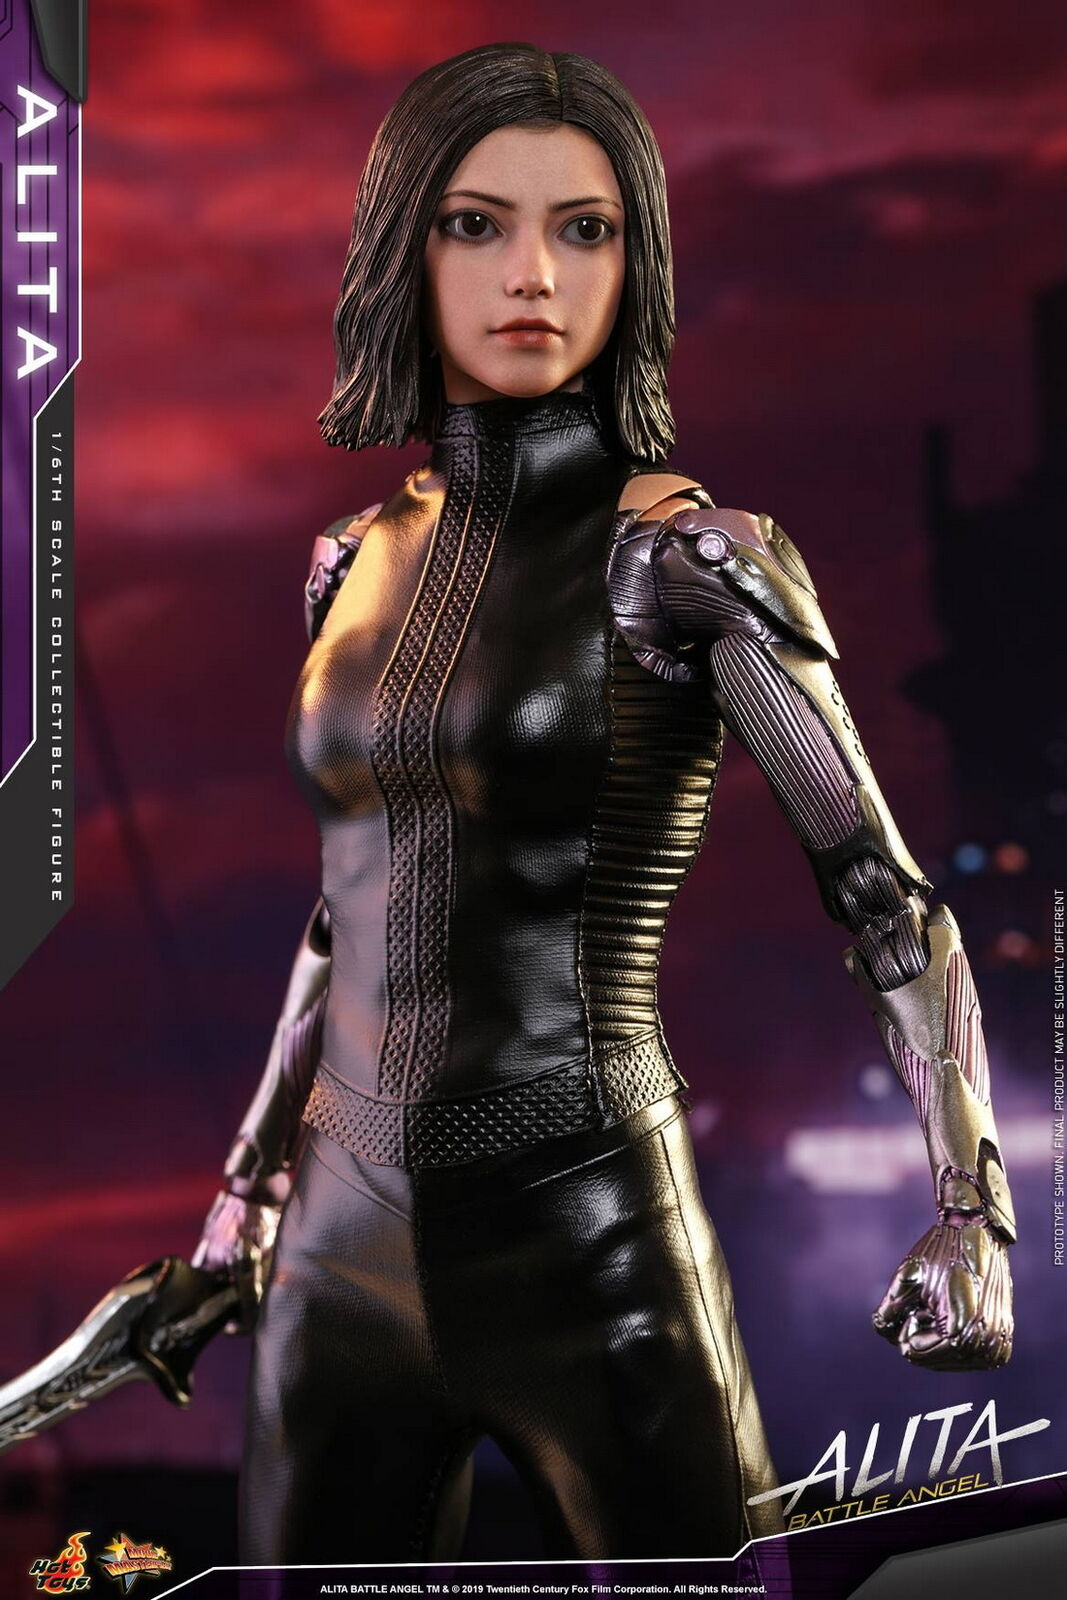 Hot Toys Alita Battle Angel 1 6th scale Alita Collectible Figure MMS520